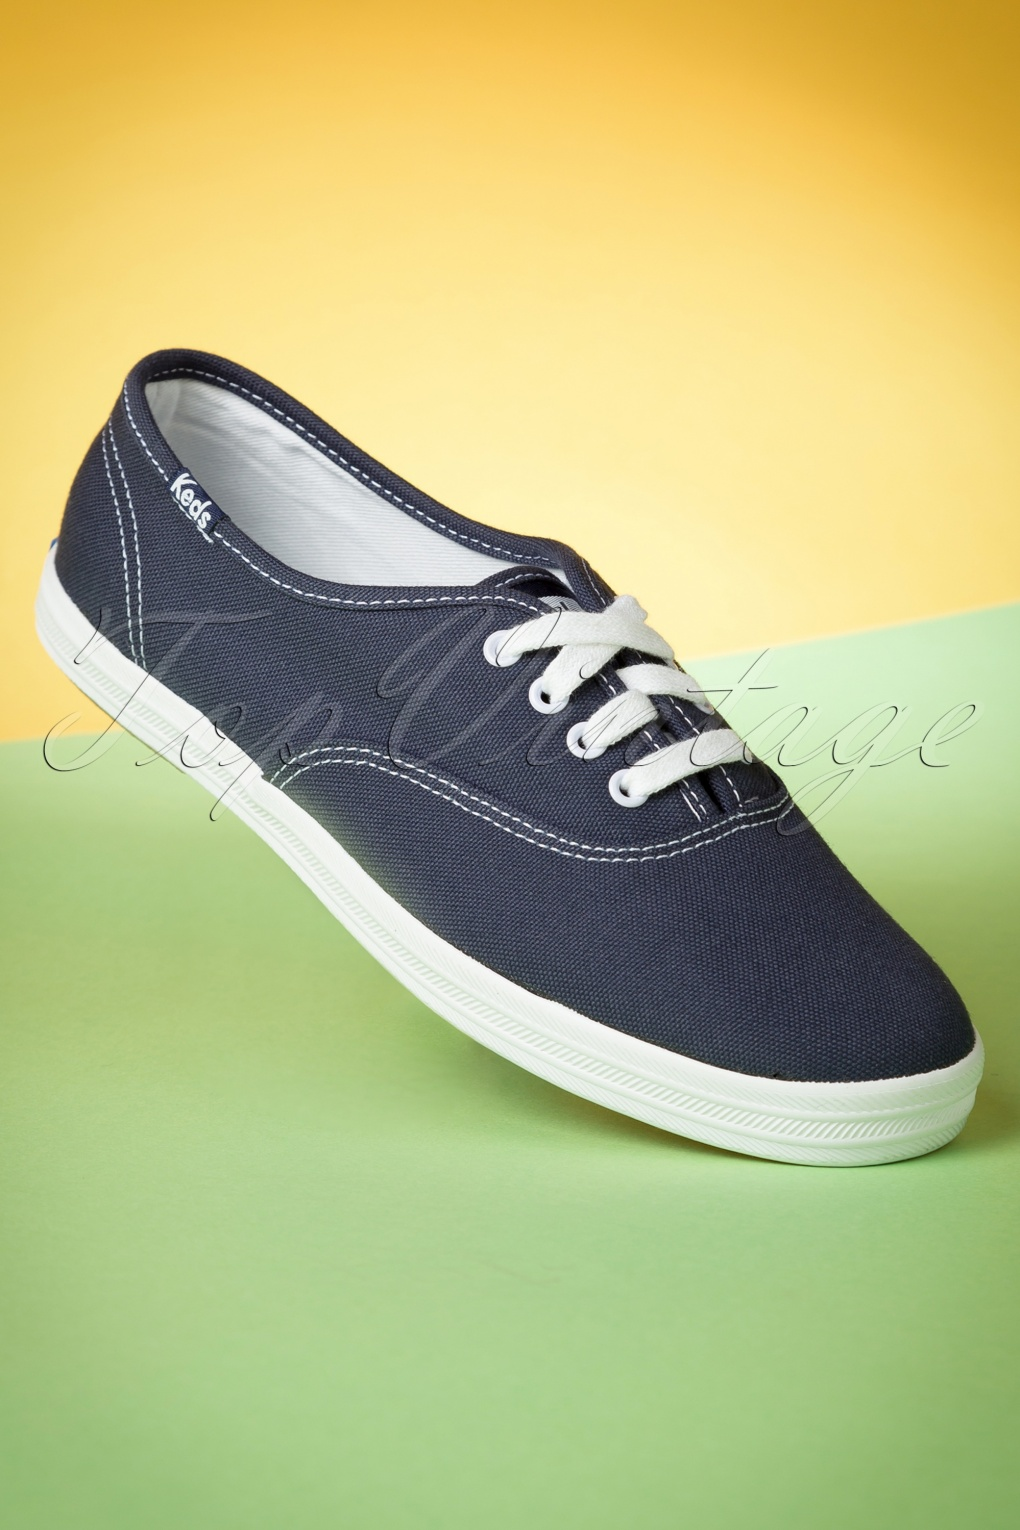 Retro Vintage Flats and Low Heel Shoes 50s Champion Core Text Sneakers in Navy £52.49 AT vintagedancer.com